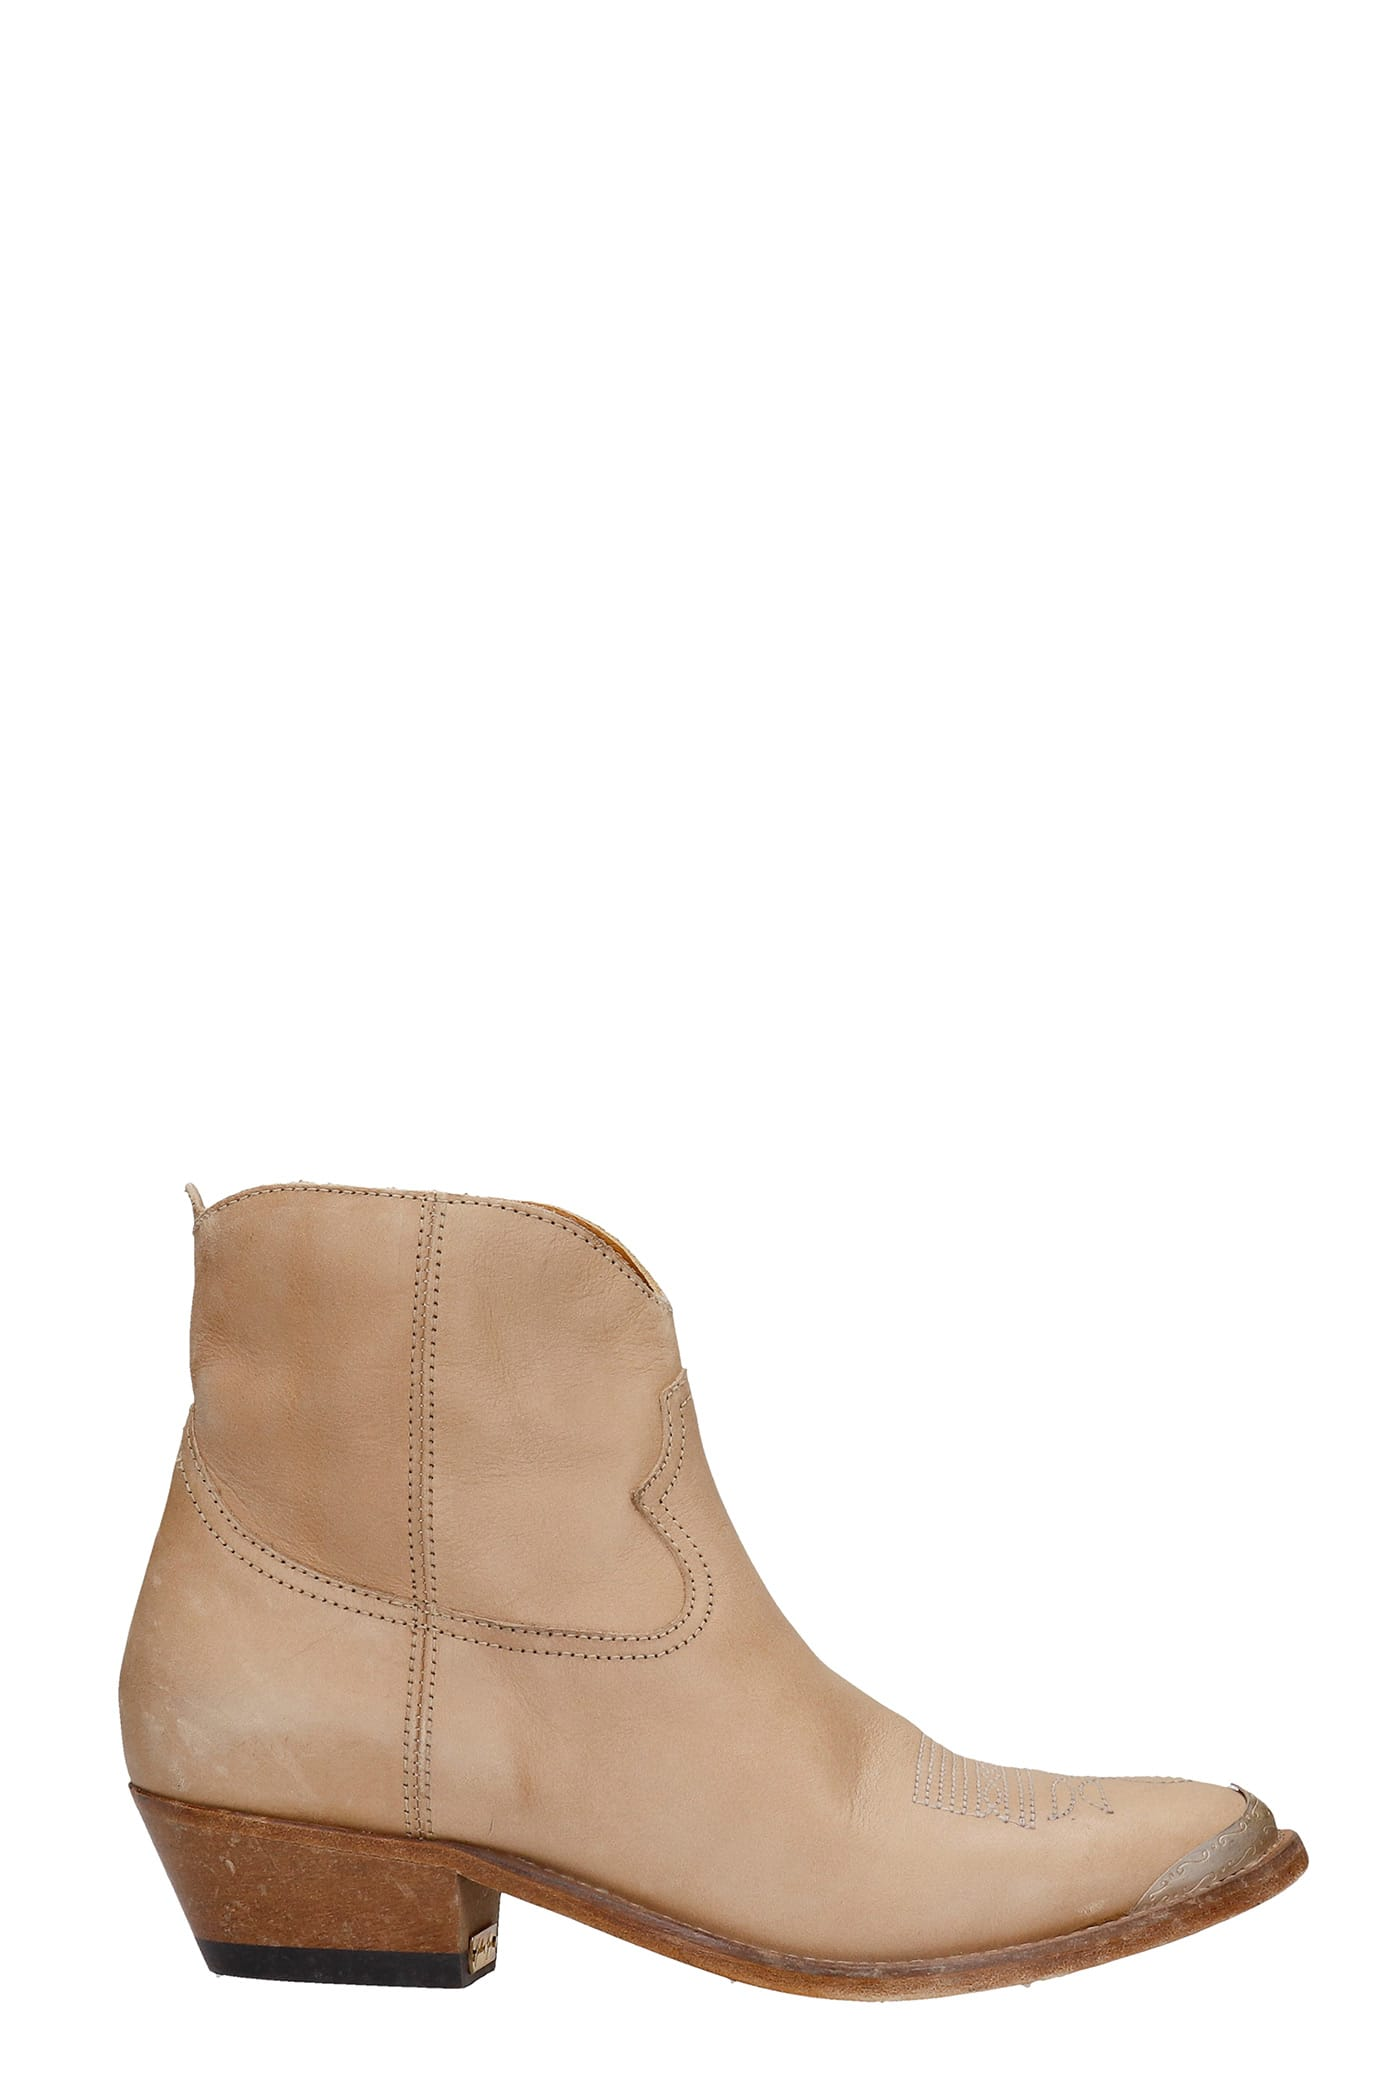 Golden Goose Leathers YOUNG TEXAN ANKLE BOOTS IN BEIGE LEATHER